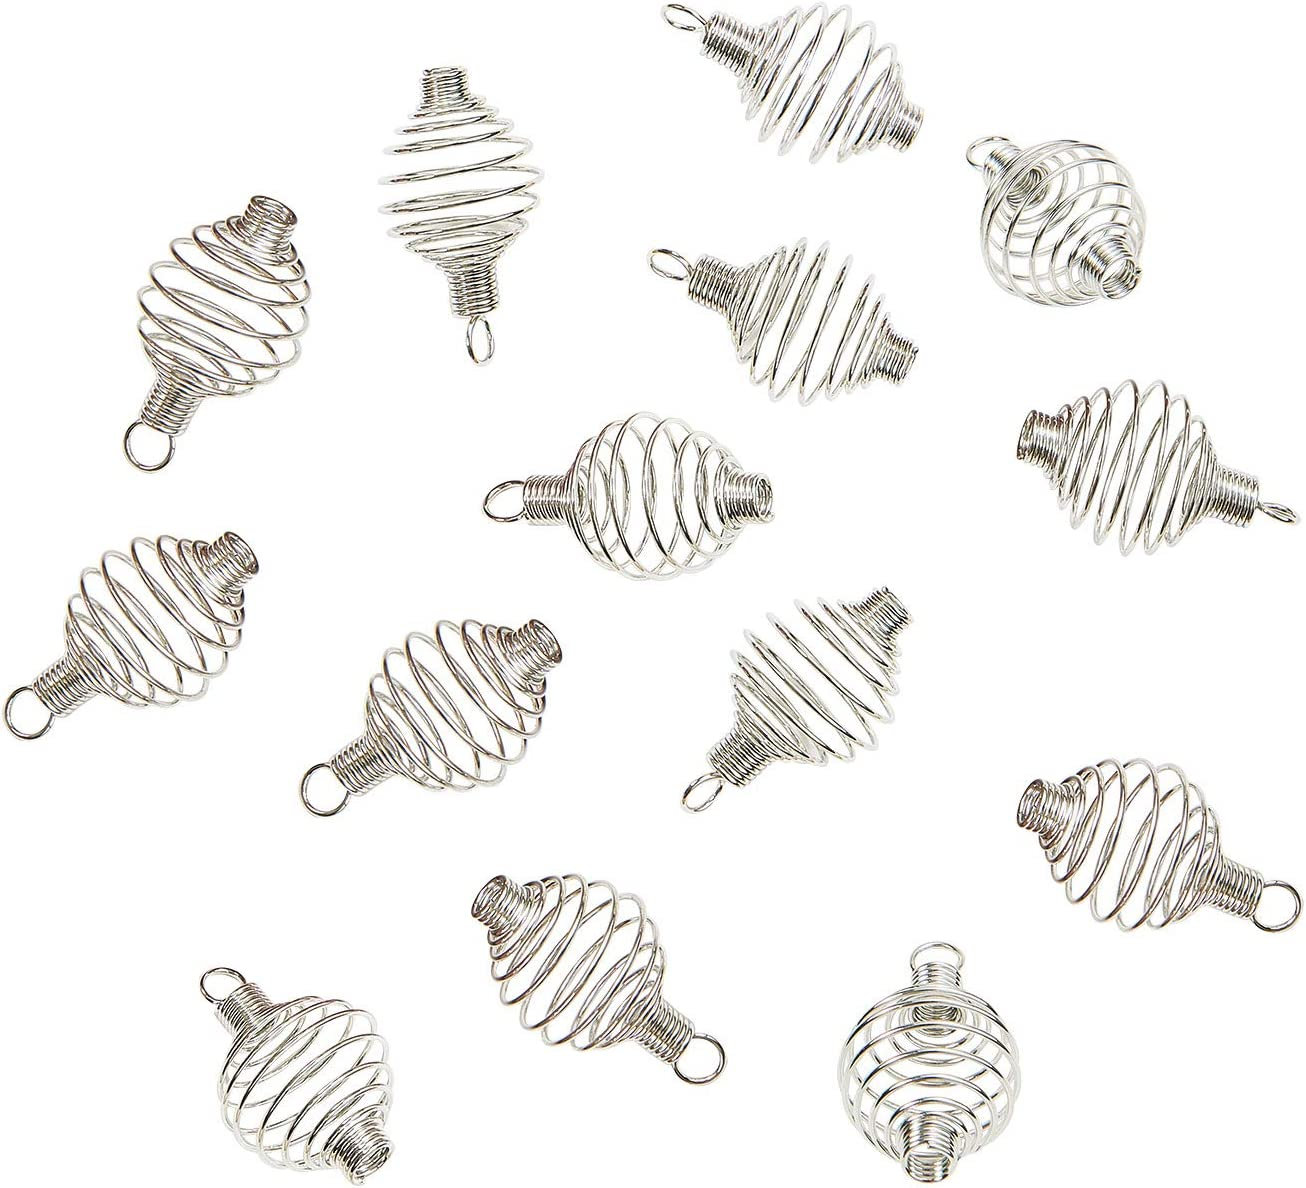 Airssory 100 Pcs 304 Stainless Steel Max 56% OFF Spiral mart Shap Cages Lamp Bead